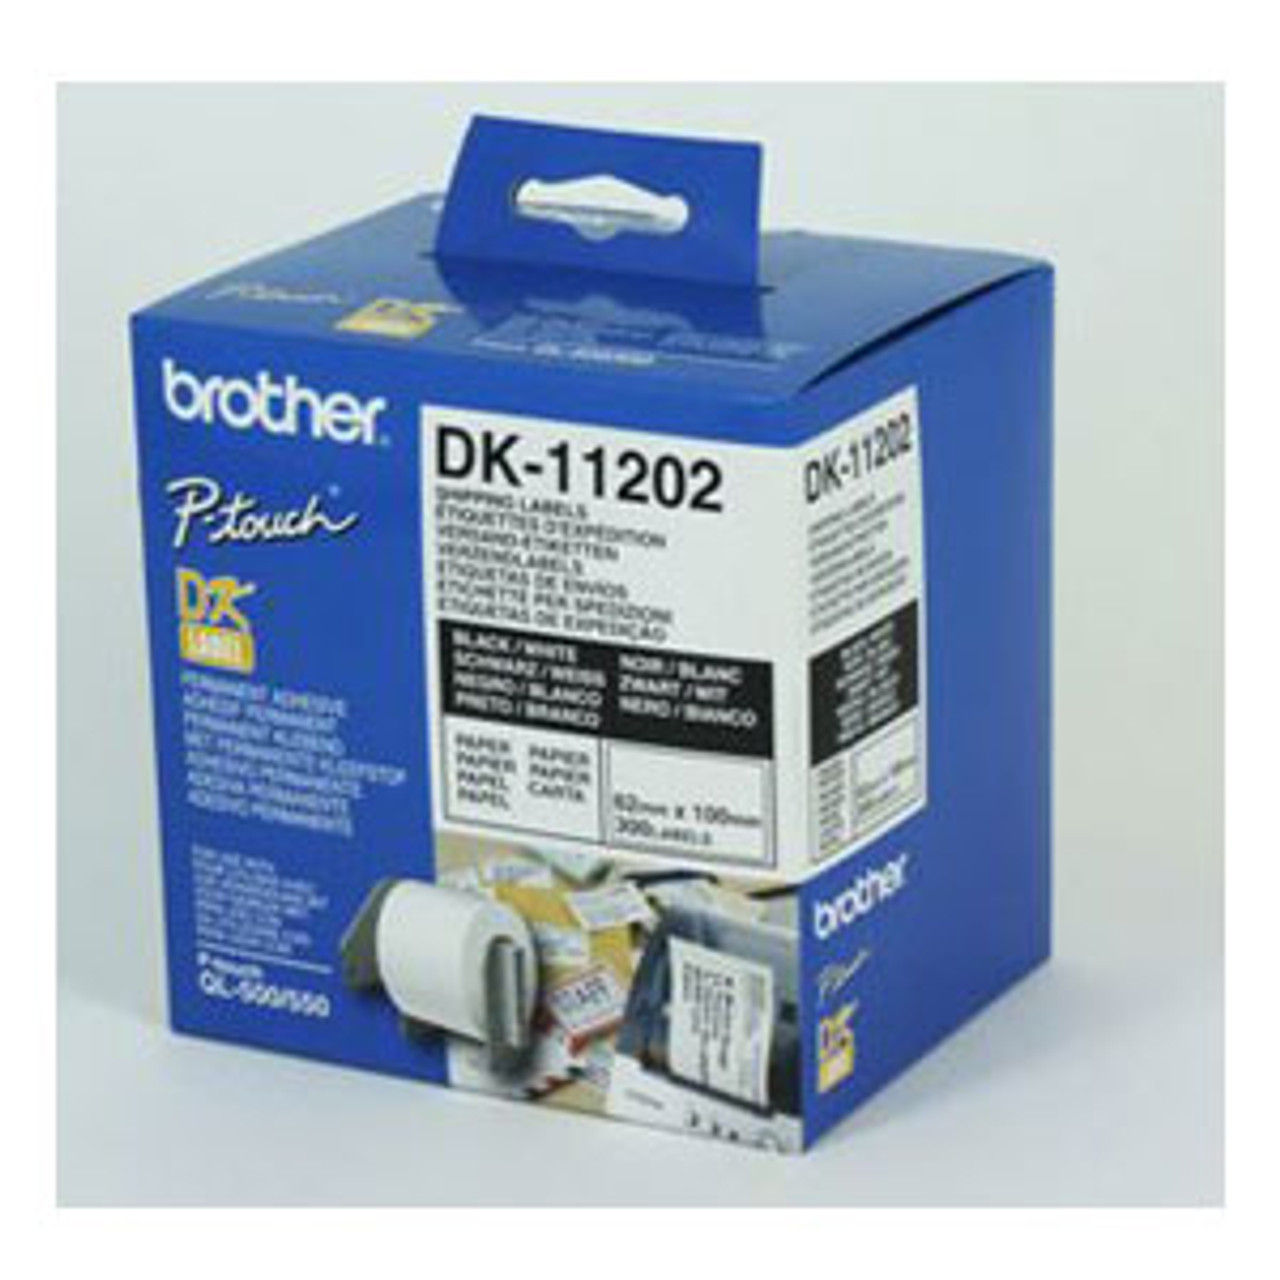 Image for Brother DK11202 White Label 300 per roll CX Computer Superstore